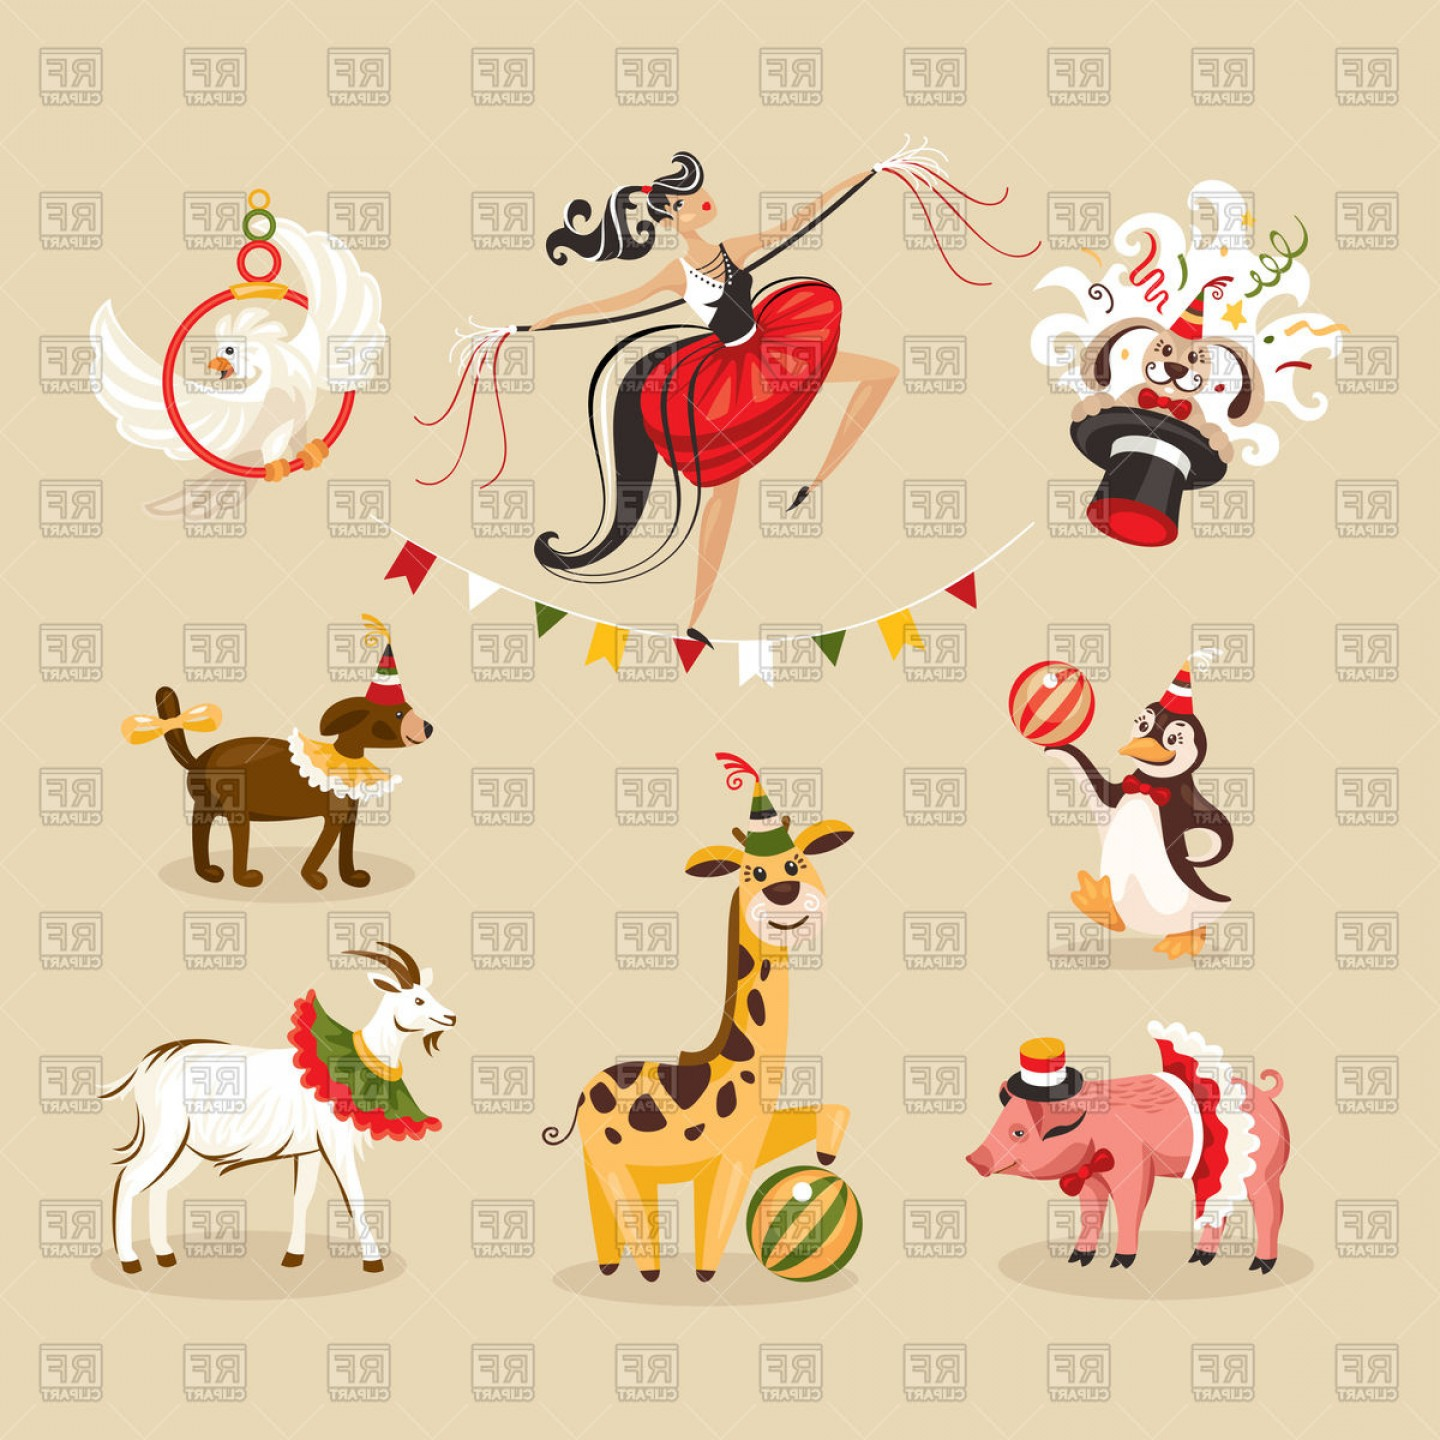 Circus Animals Vector Graphic: Set Of Circus Animals And Acrobat Vector Clipart